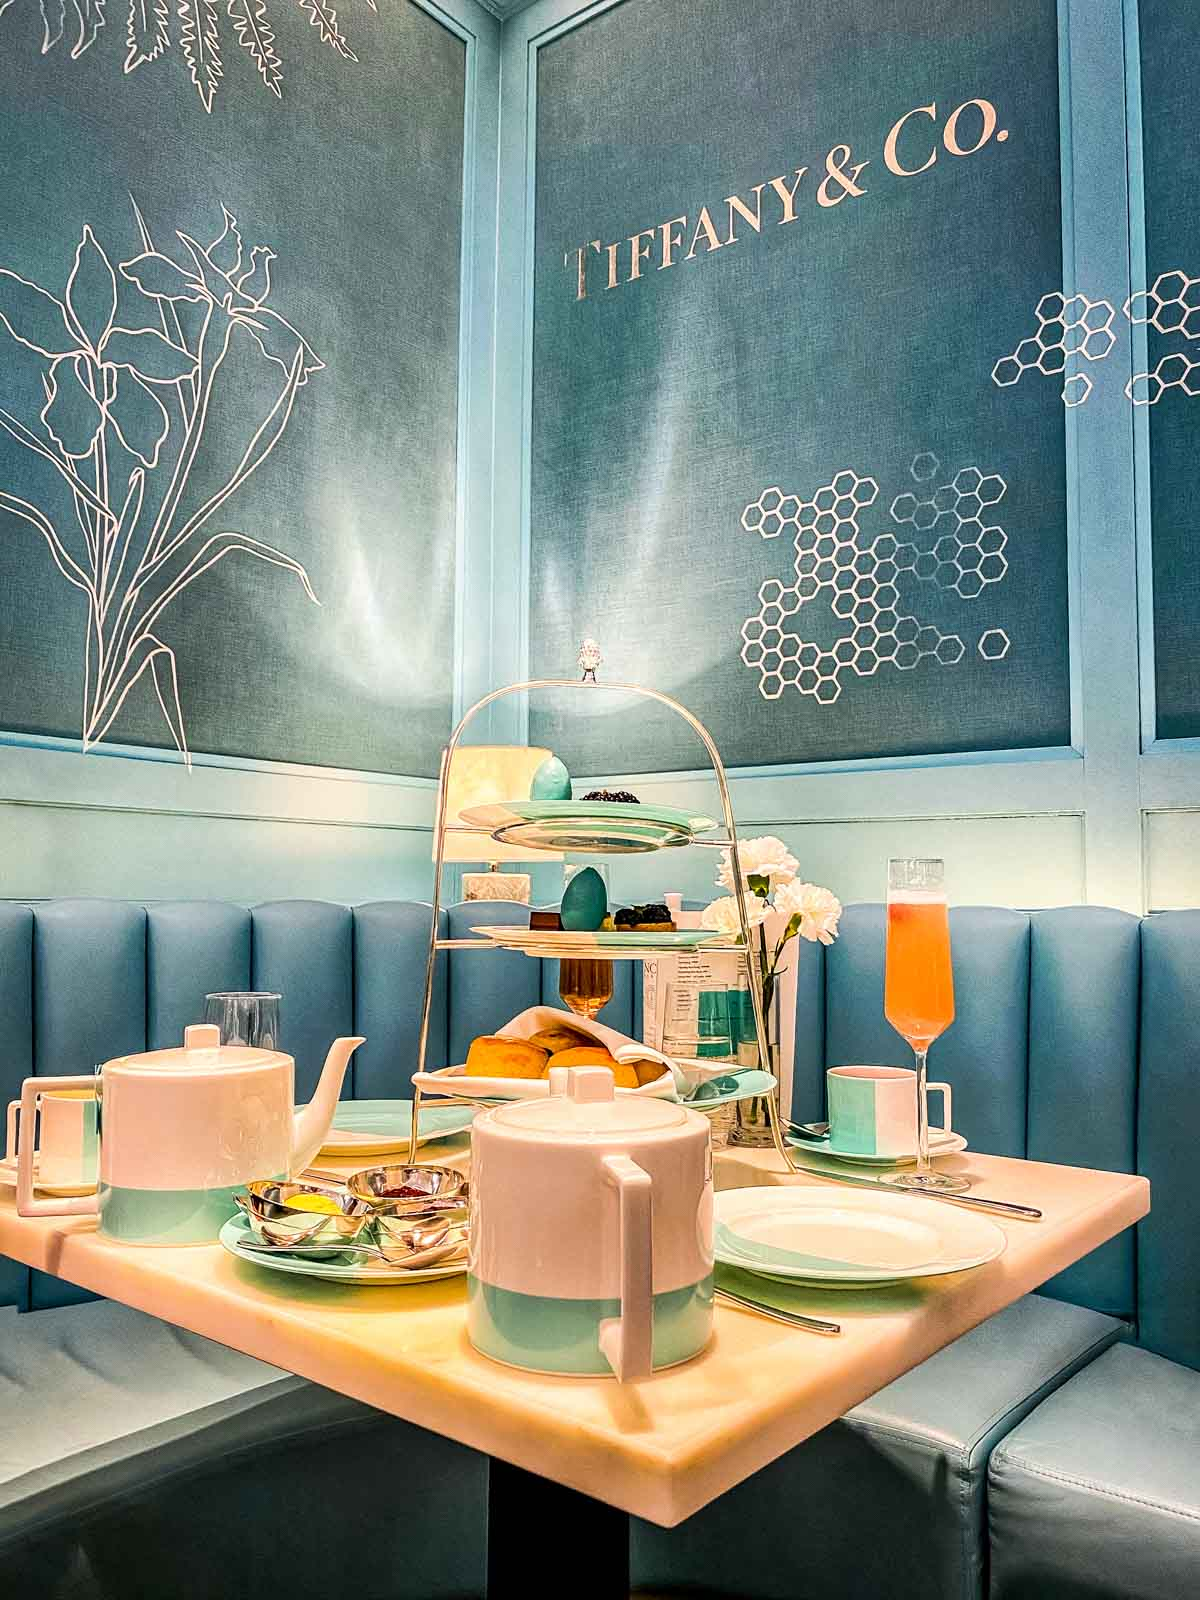 the-setting Afternoon Tea at Tiffany's Blue Box Cafe, Harrods